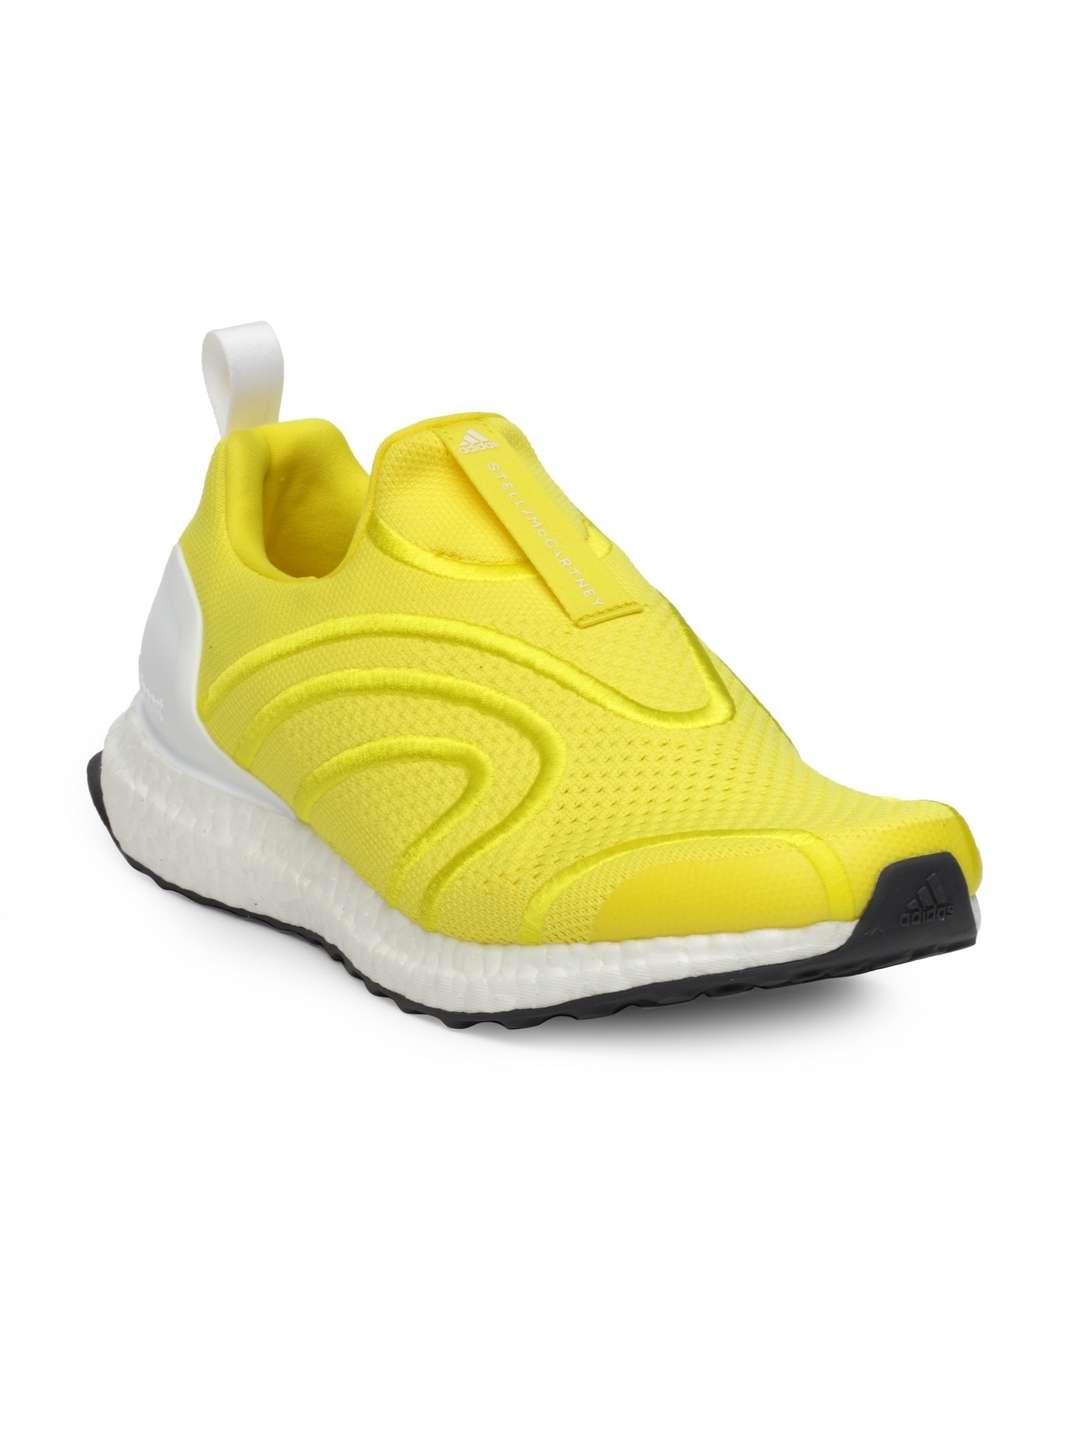 half off dba04 9a620 Stella McCartney by ADIDAS Women Yellow Ultraboost Uncaged Running Shoes